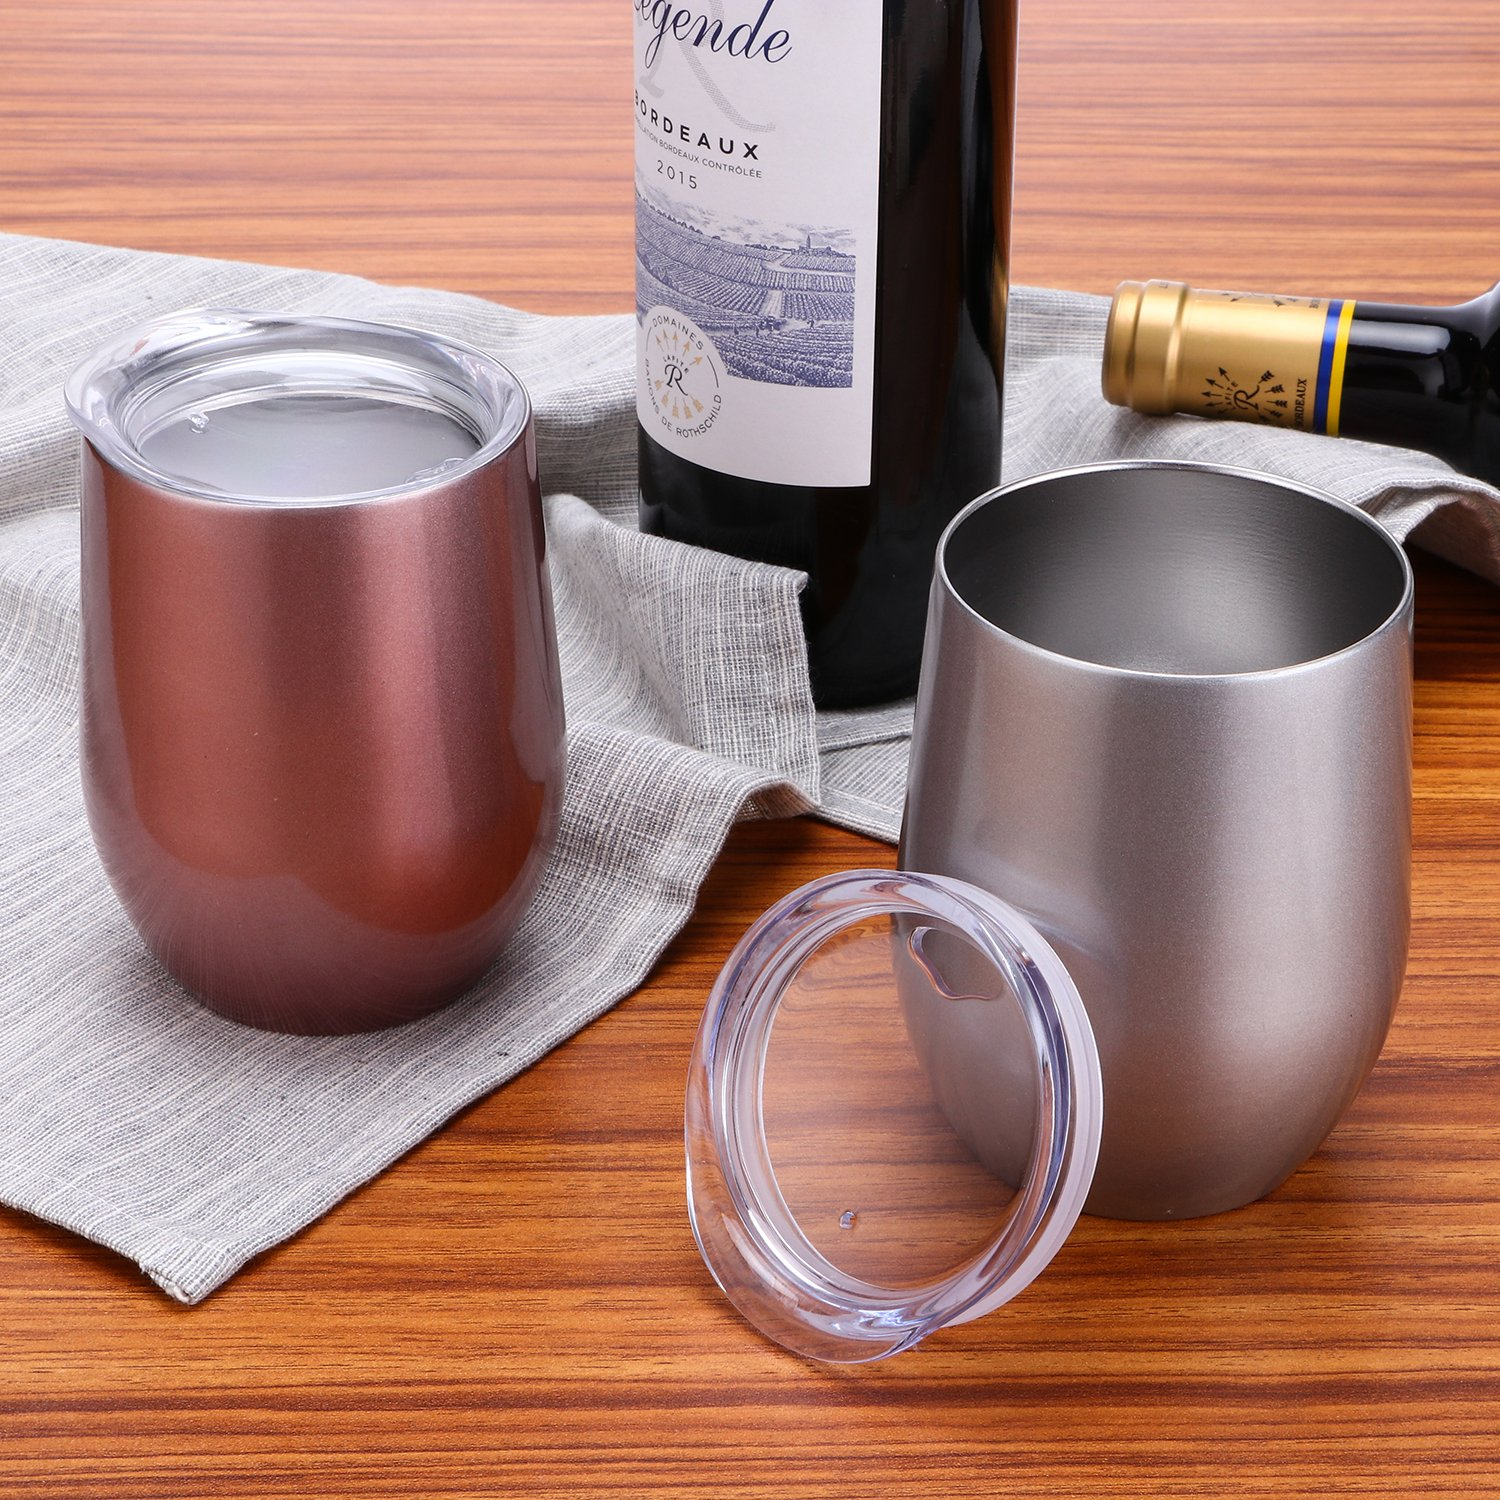 Coffee Drinks Champagne Cocktails,2 Sets TOMTOO Insulated Wine Tumbler With Lid,12 oz Double Wall Vacuum Insulated Stainless Steel Wine Glasses for Wine A-Rose Gold 2 Pack, 12 oz